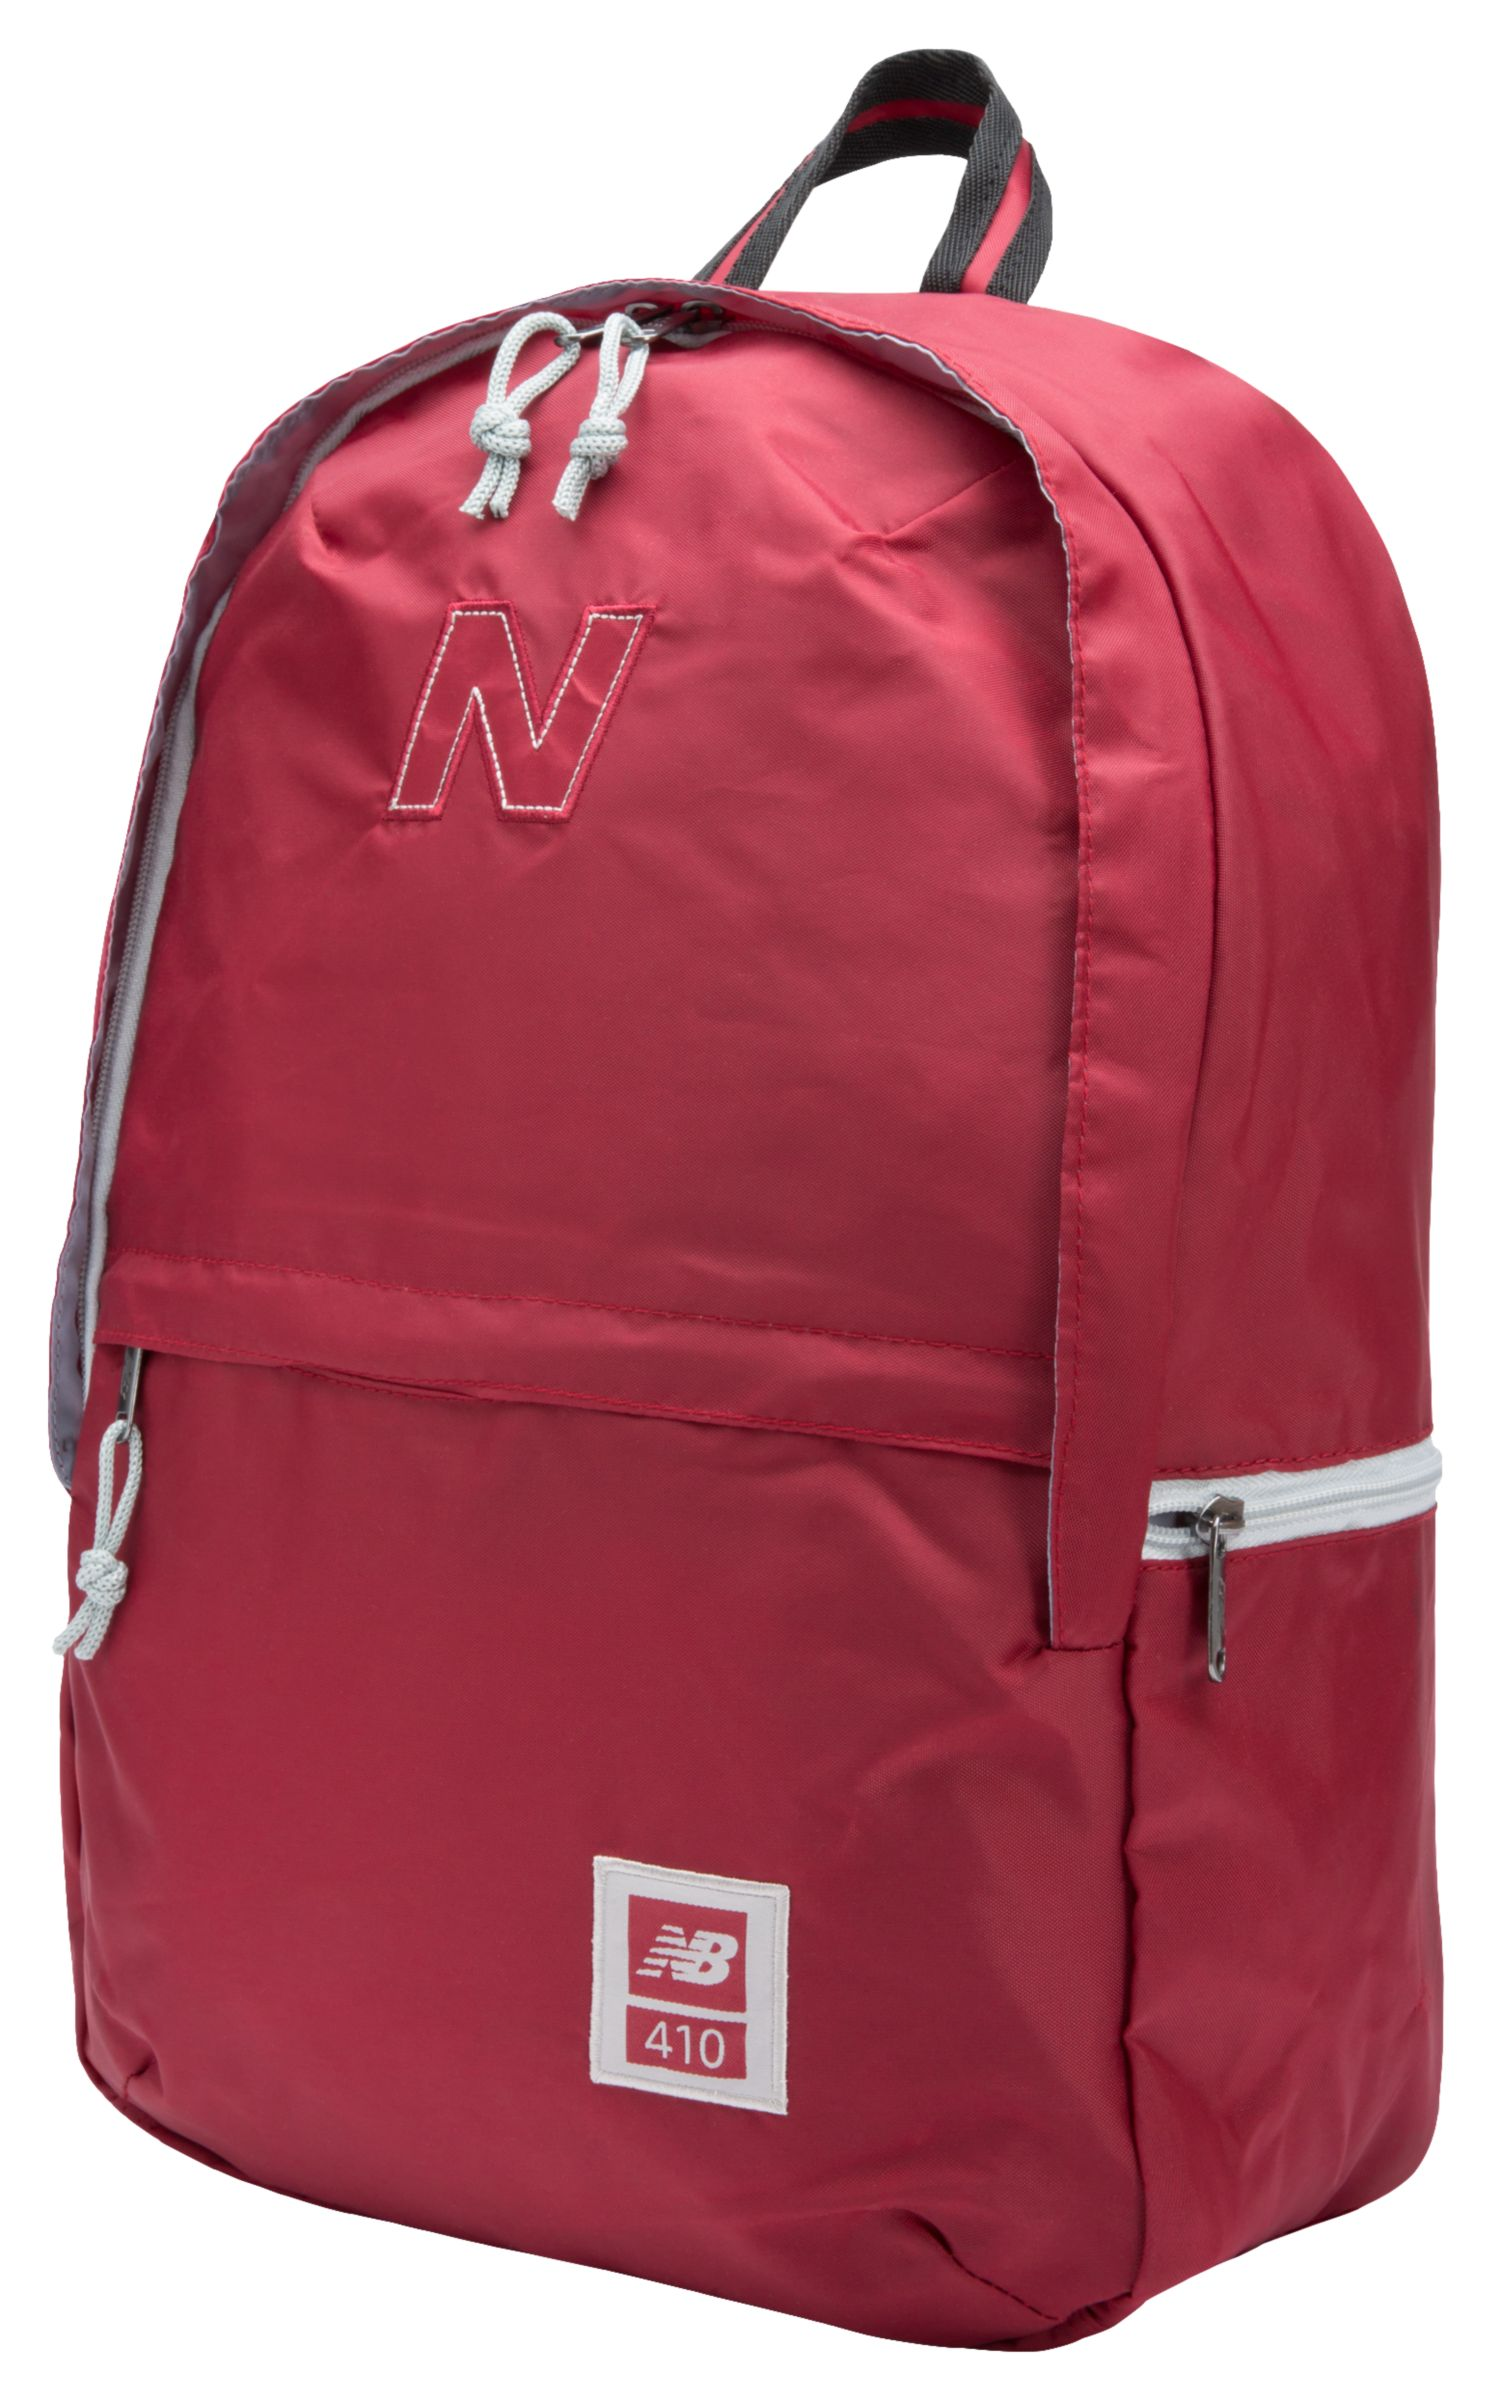 NB Smooth Burn Bag, Burgundy